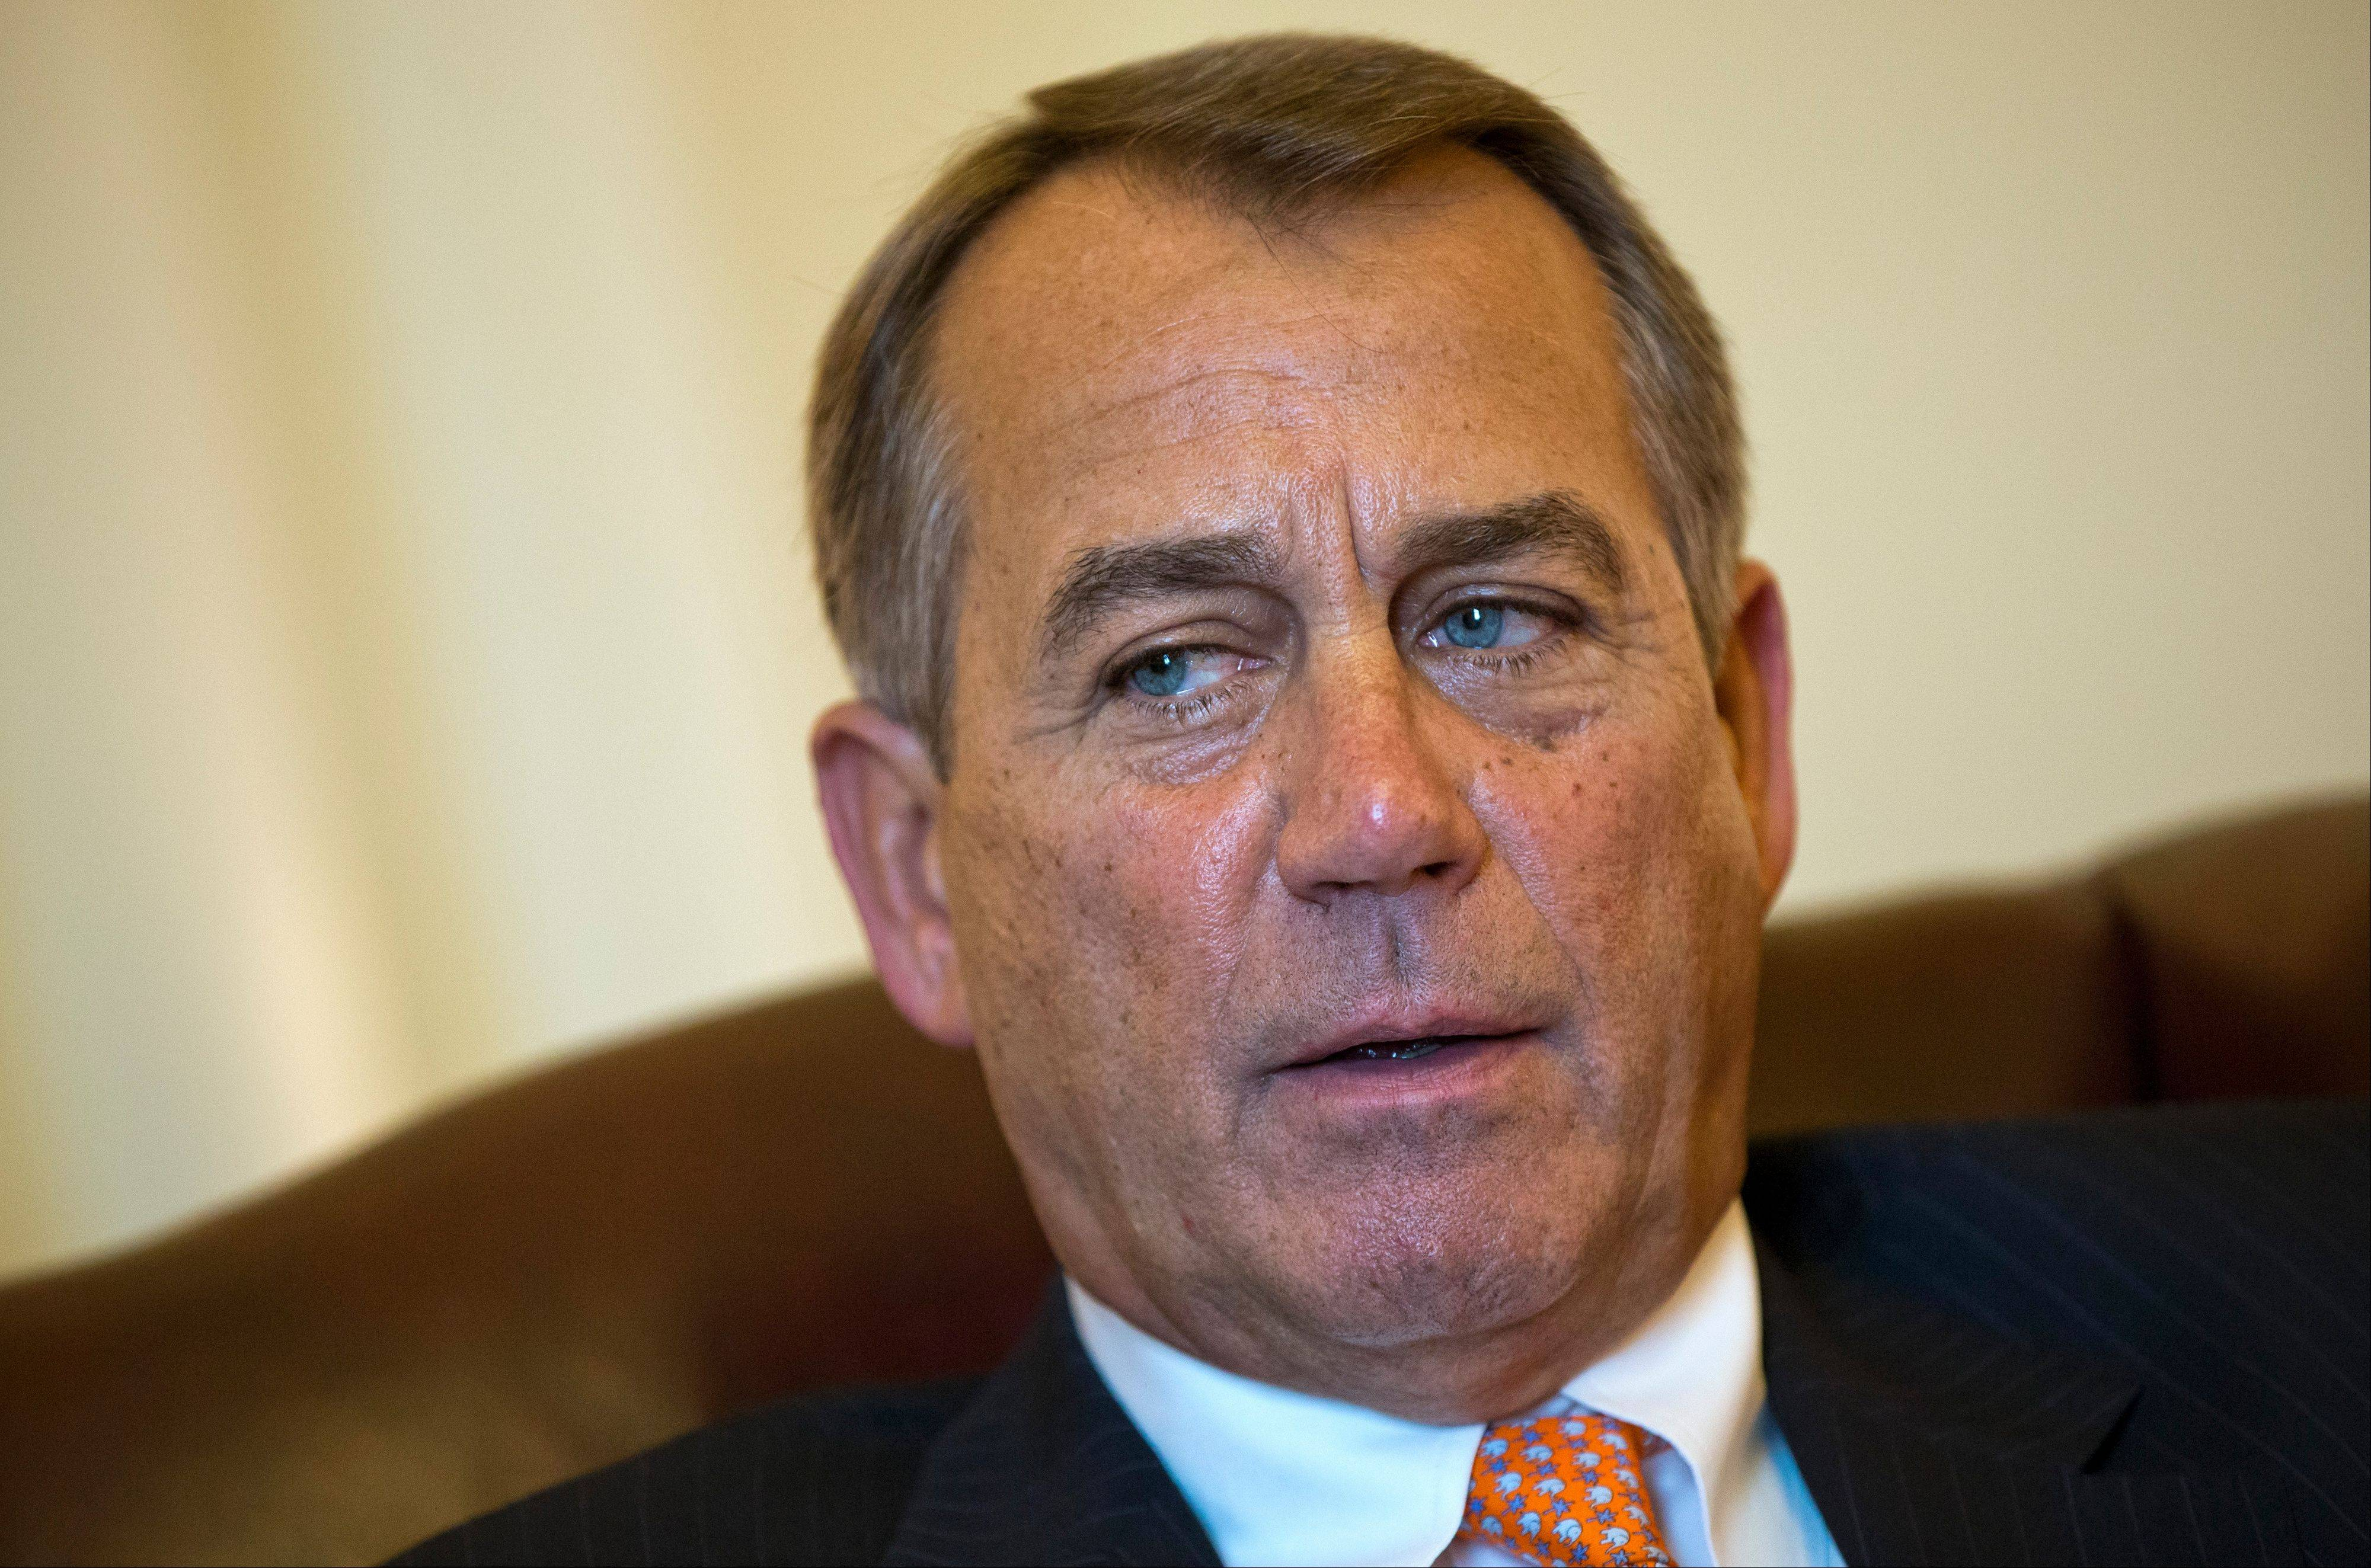 Speaker of the House John Boehner on Wednesday sounded pessimistic about much of President Barack Obama's agenda that he outlined in his State of the Union address the night before.